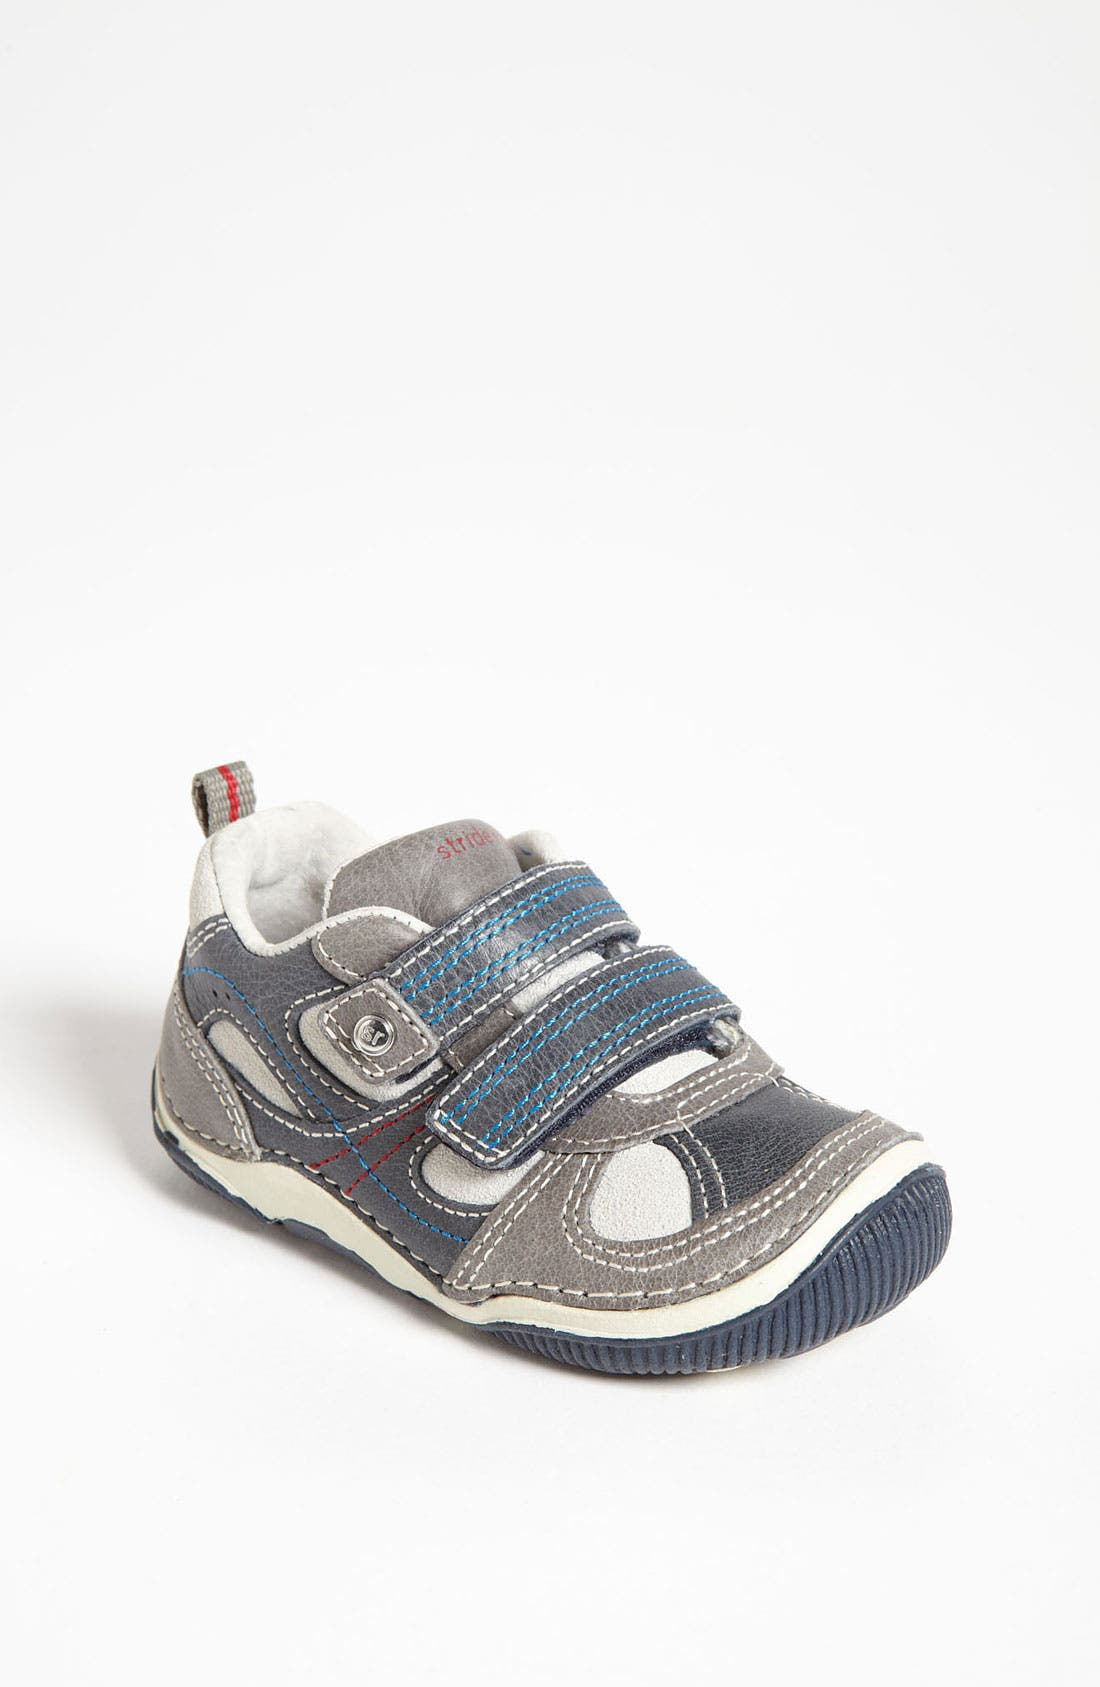 Main Image - Stride Rite 'Woody' Sneaker (Baby, Walker & Toddler)